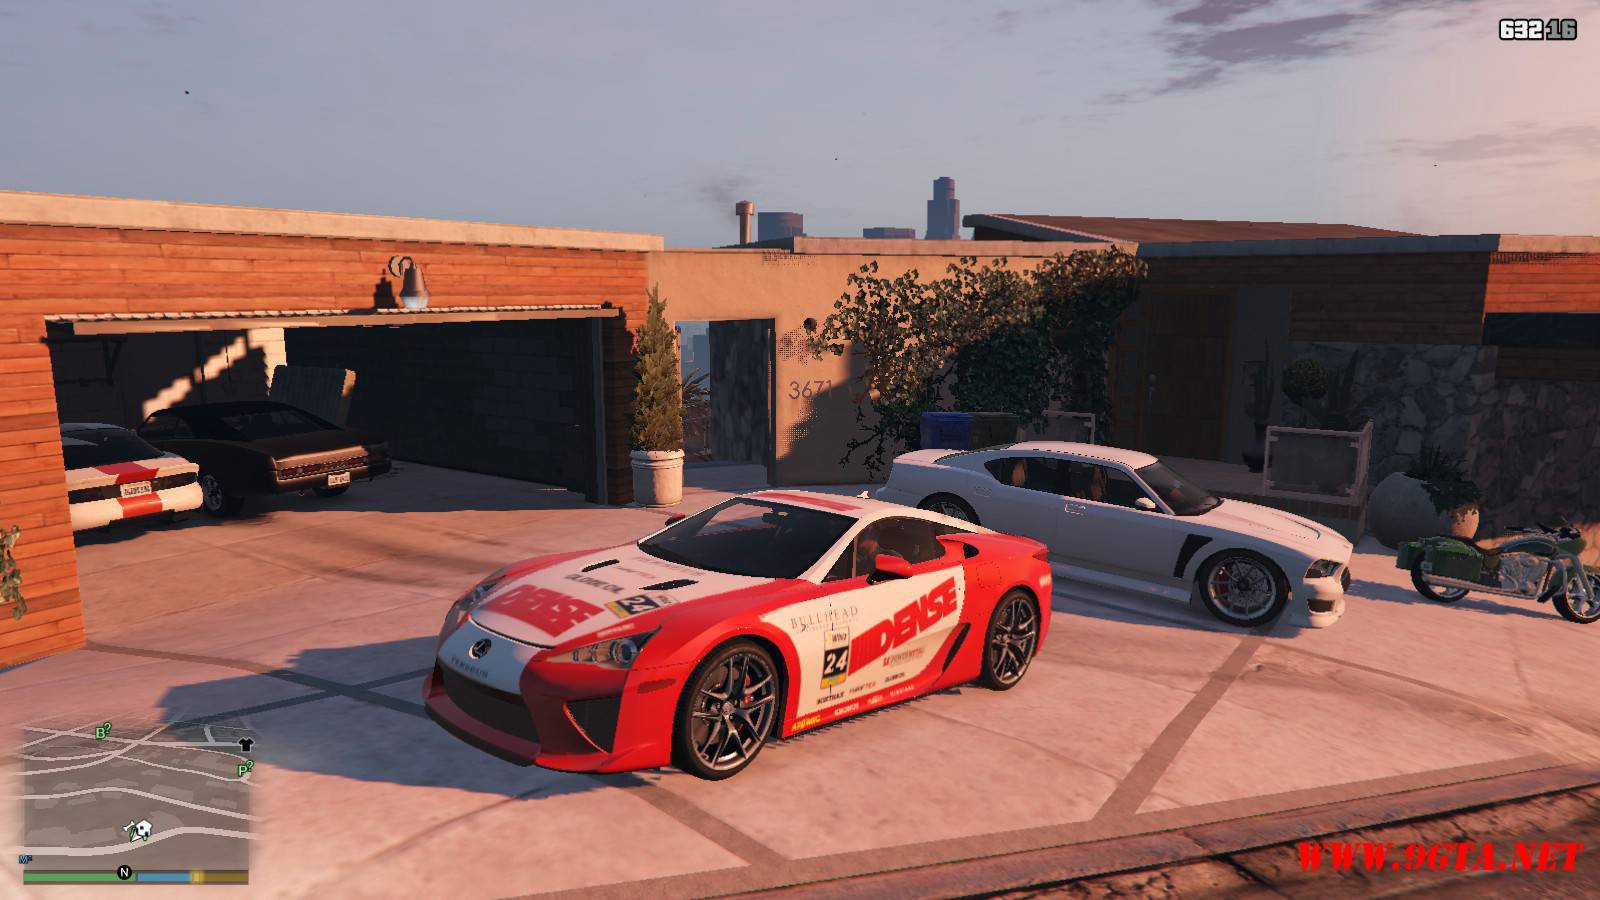 2010 Lexus LFA v2.0 Mod For GTA5 (17)